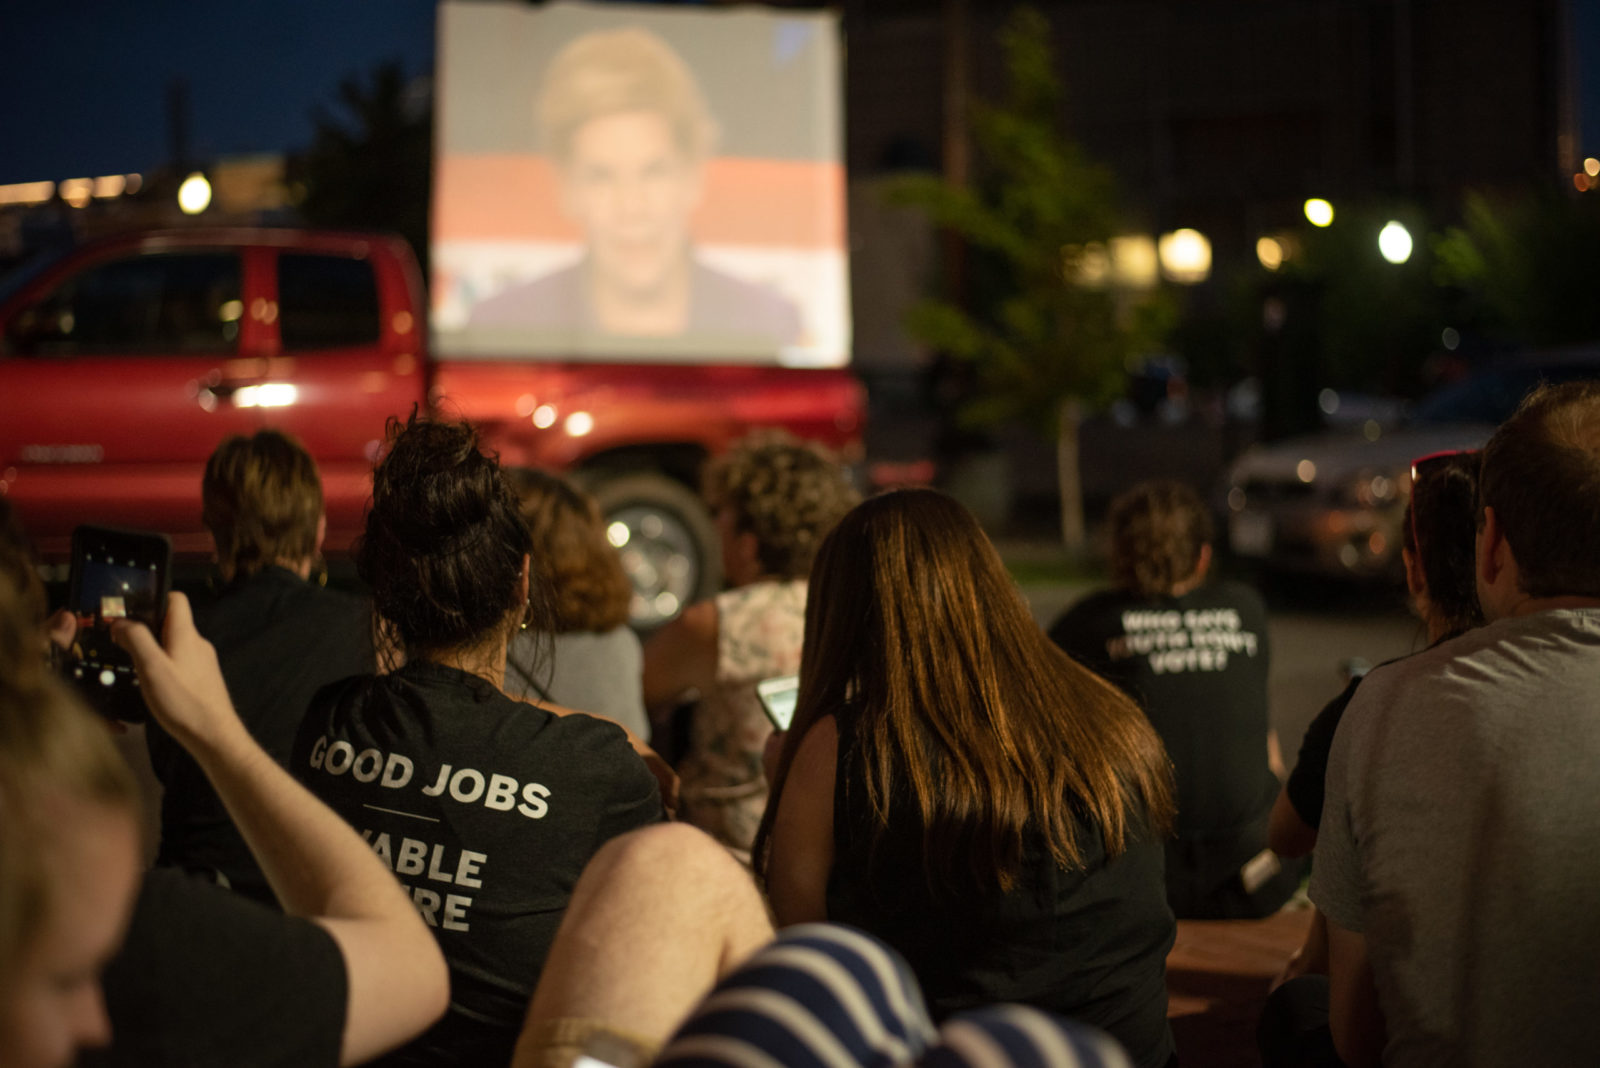 Sunrise Movement activists watch the presidential debate on a screen outside the DNC headquarters in DC during the sit-in.